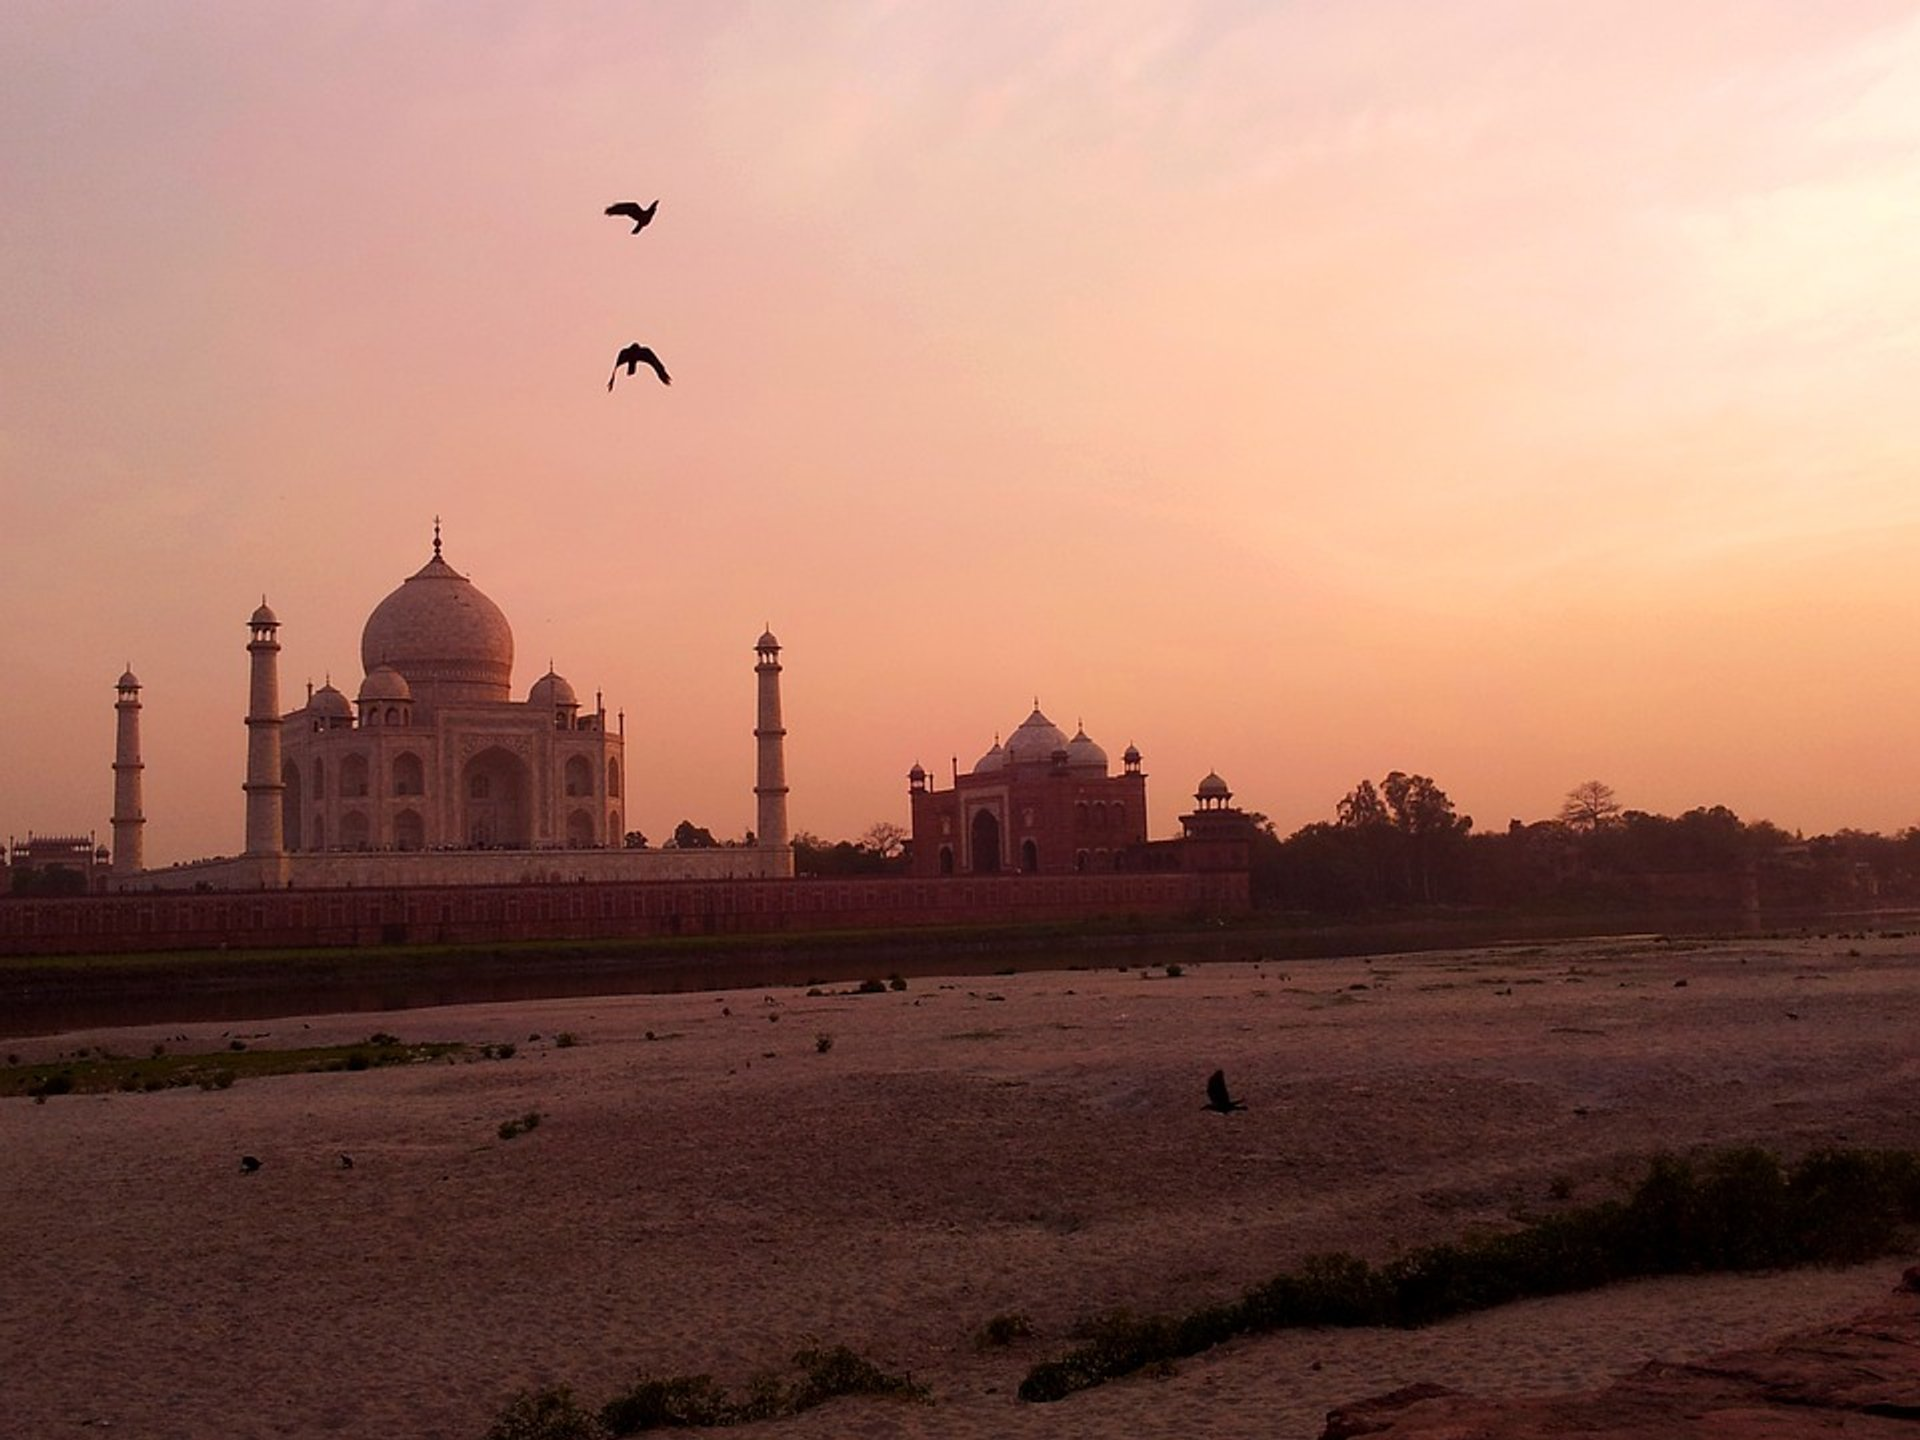 Sunrise and Sunset near Taj Mahal in Taj Mahal and Agra  - Best Time